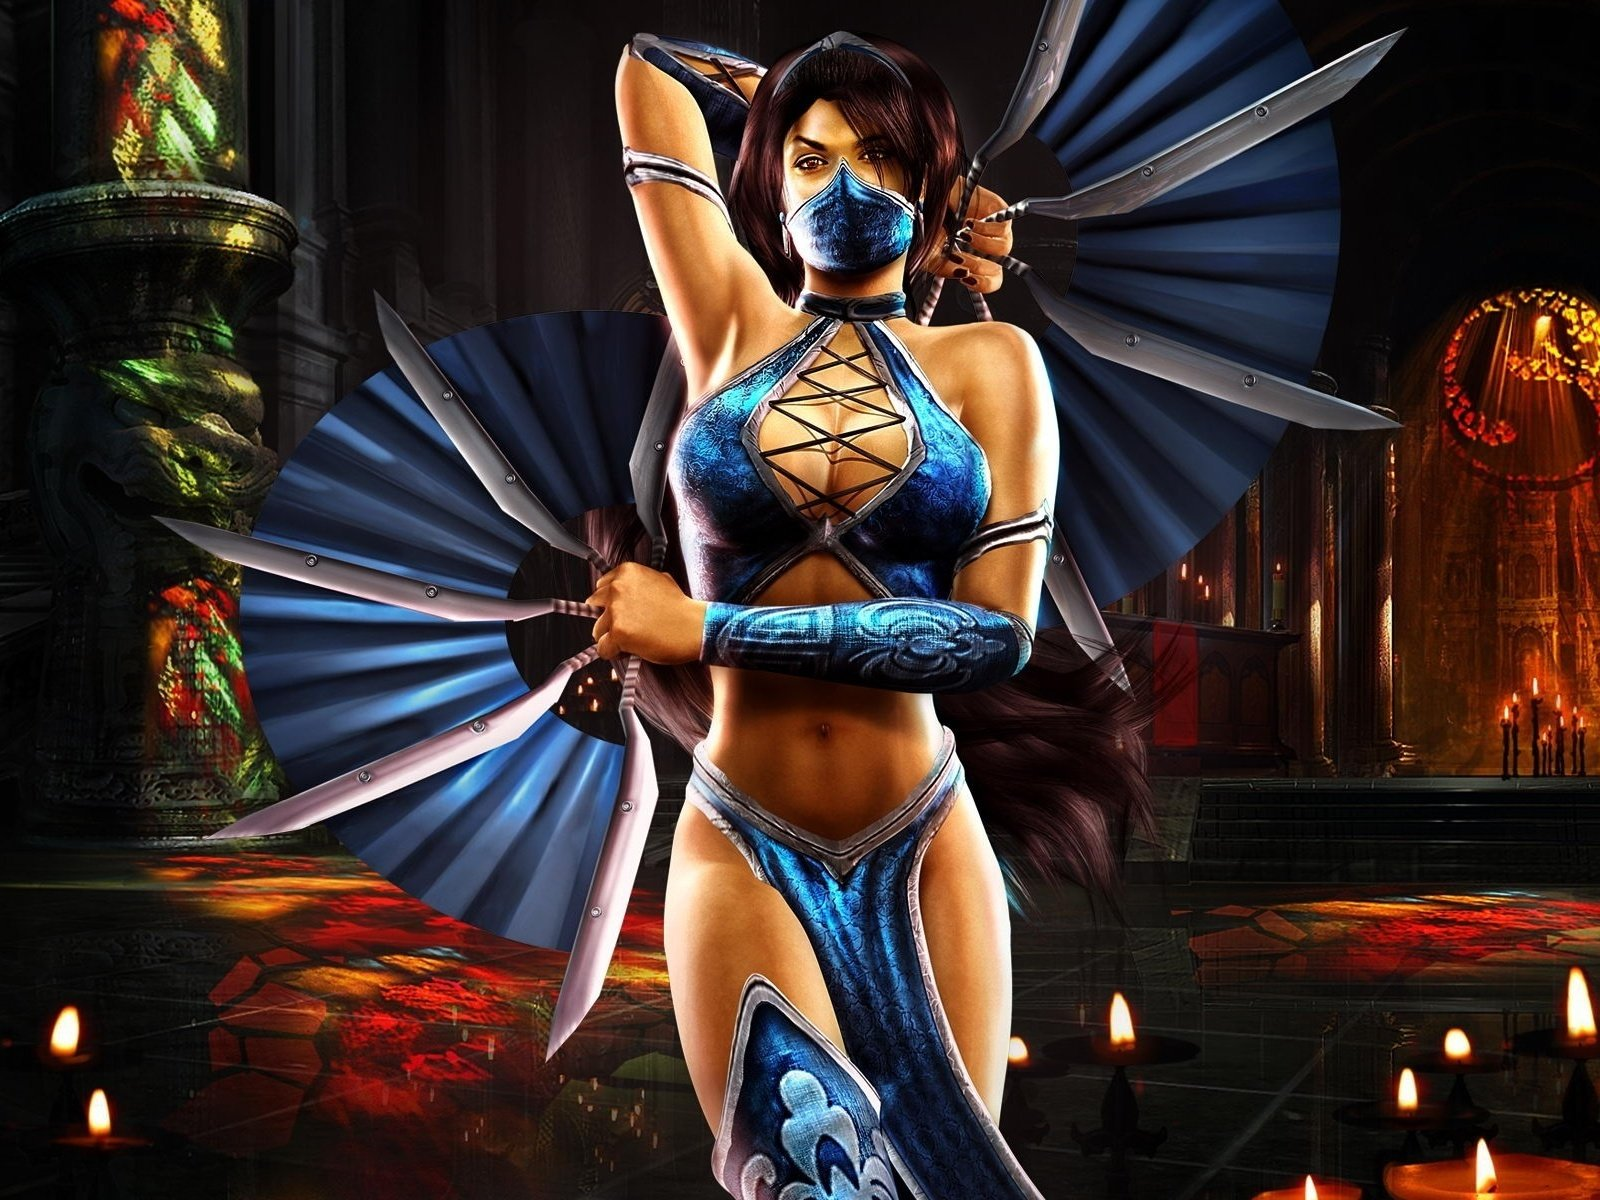 10 Best Female Video Game Characters10 Best Female Video Game Characters - GameRevolution - 웹